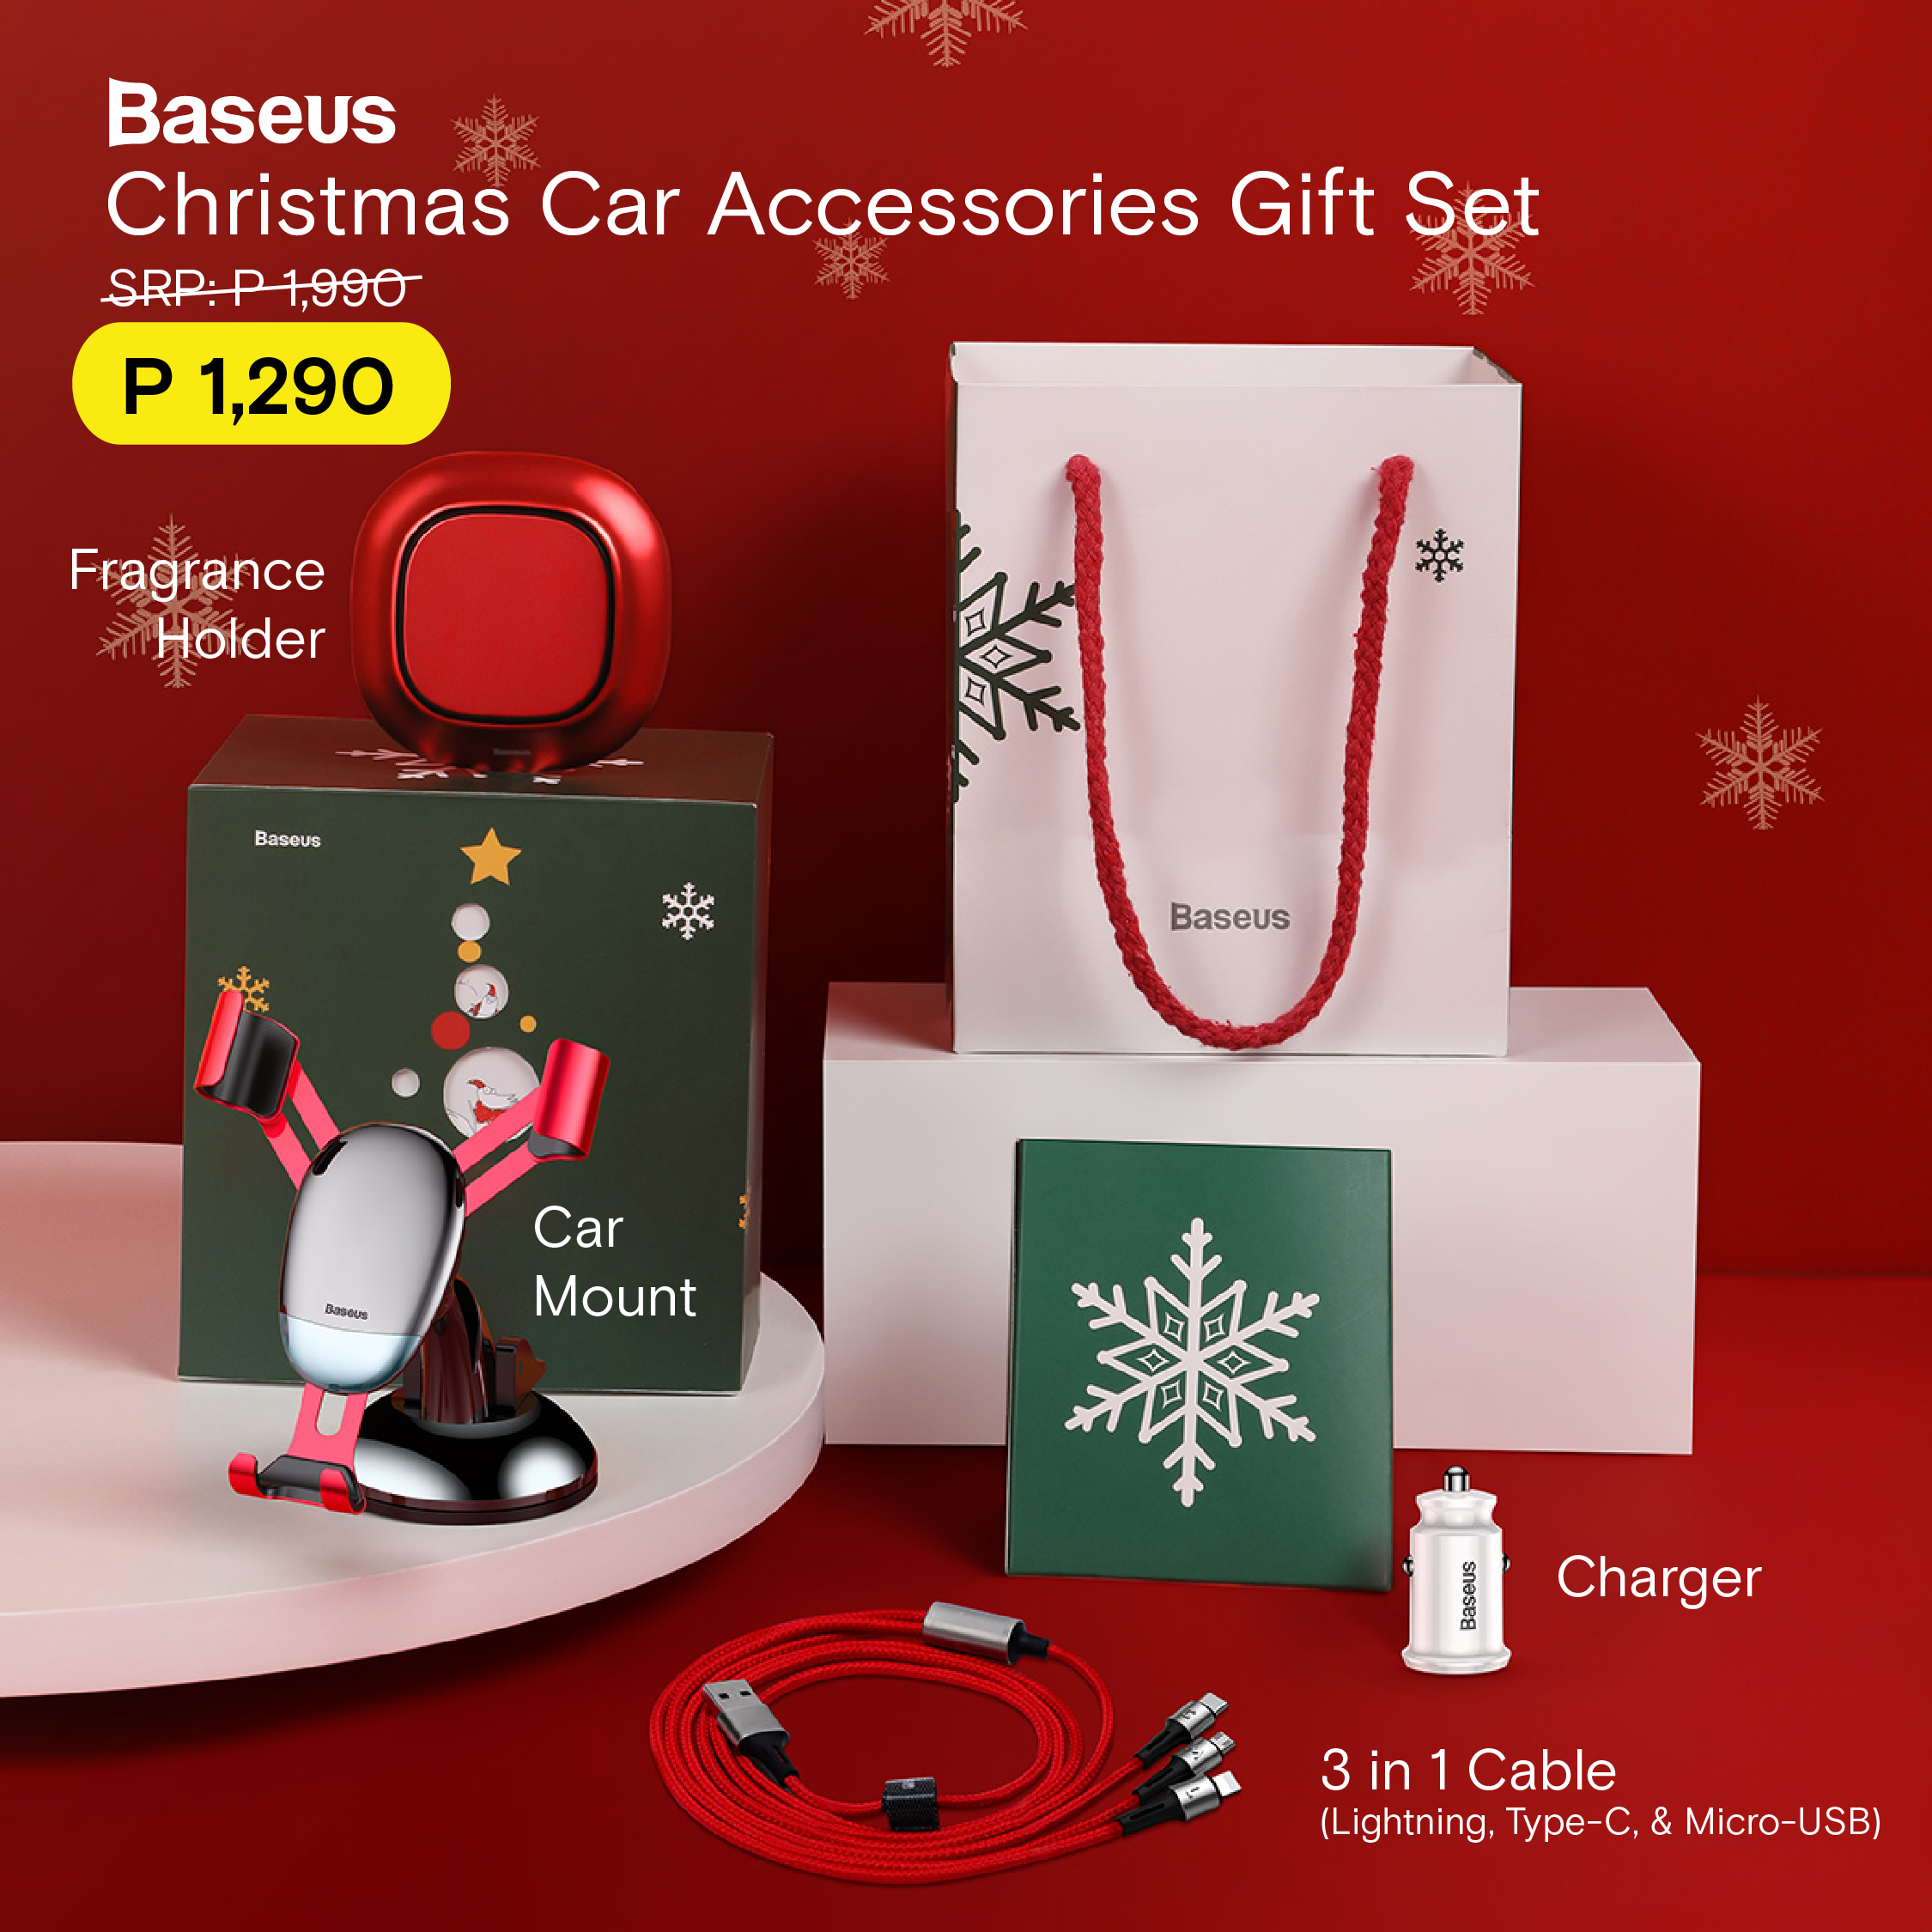 Unboxing: Baseus Christmas Car Accessories Gift Set - Just another lifestyle news